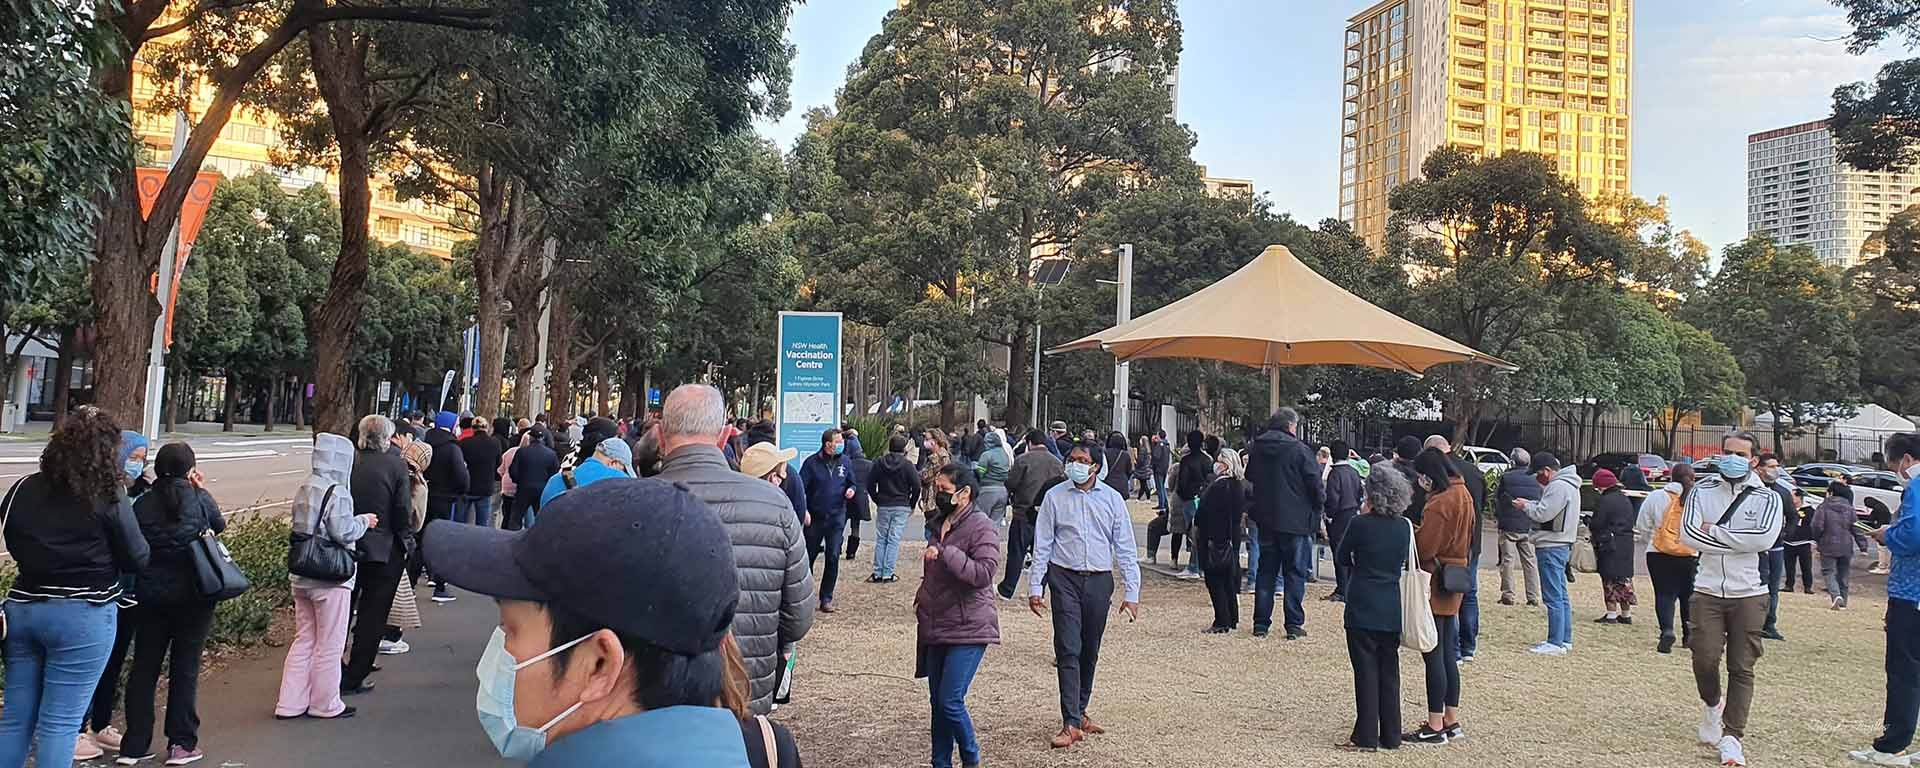 People in face masks line up in a large park